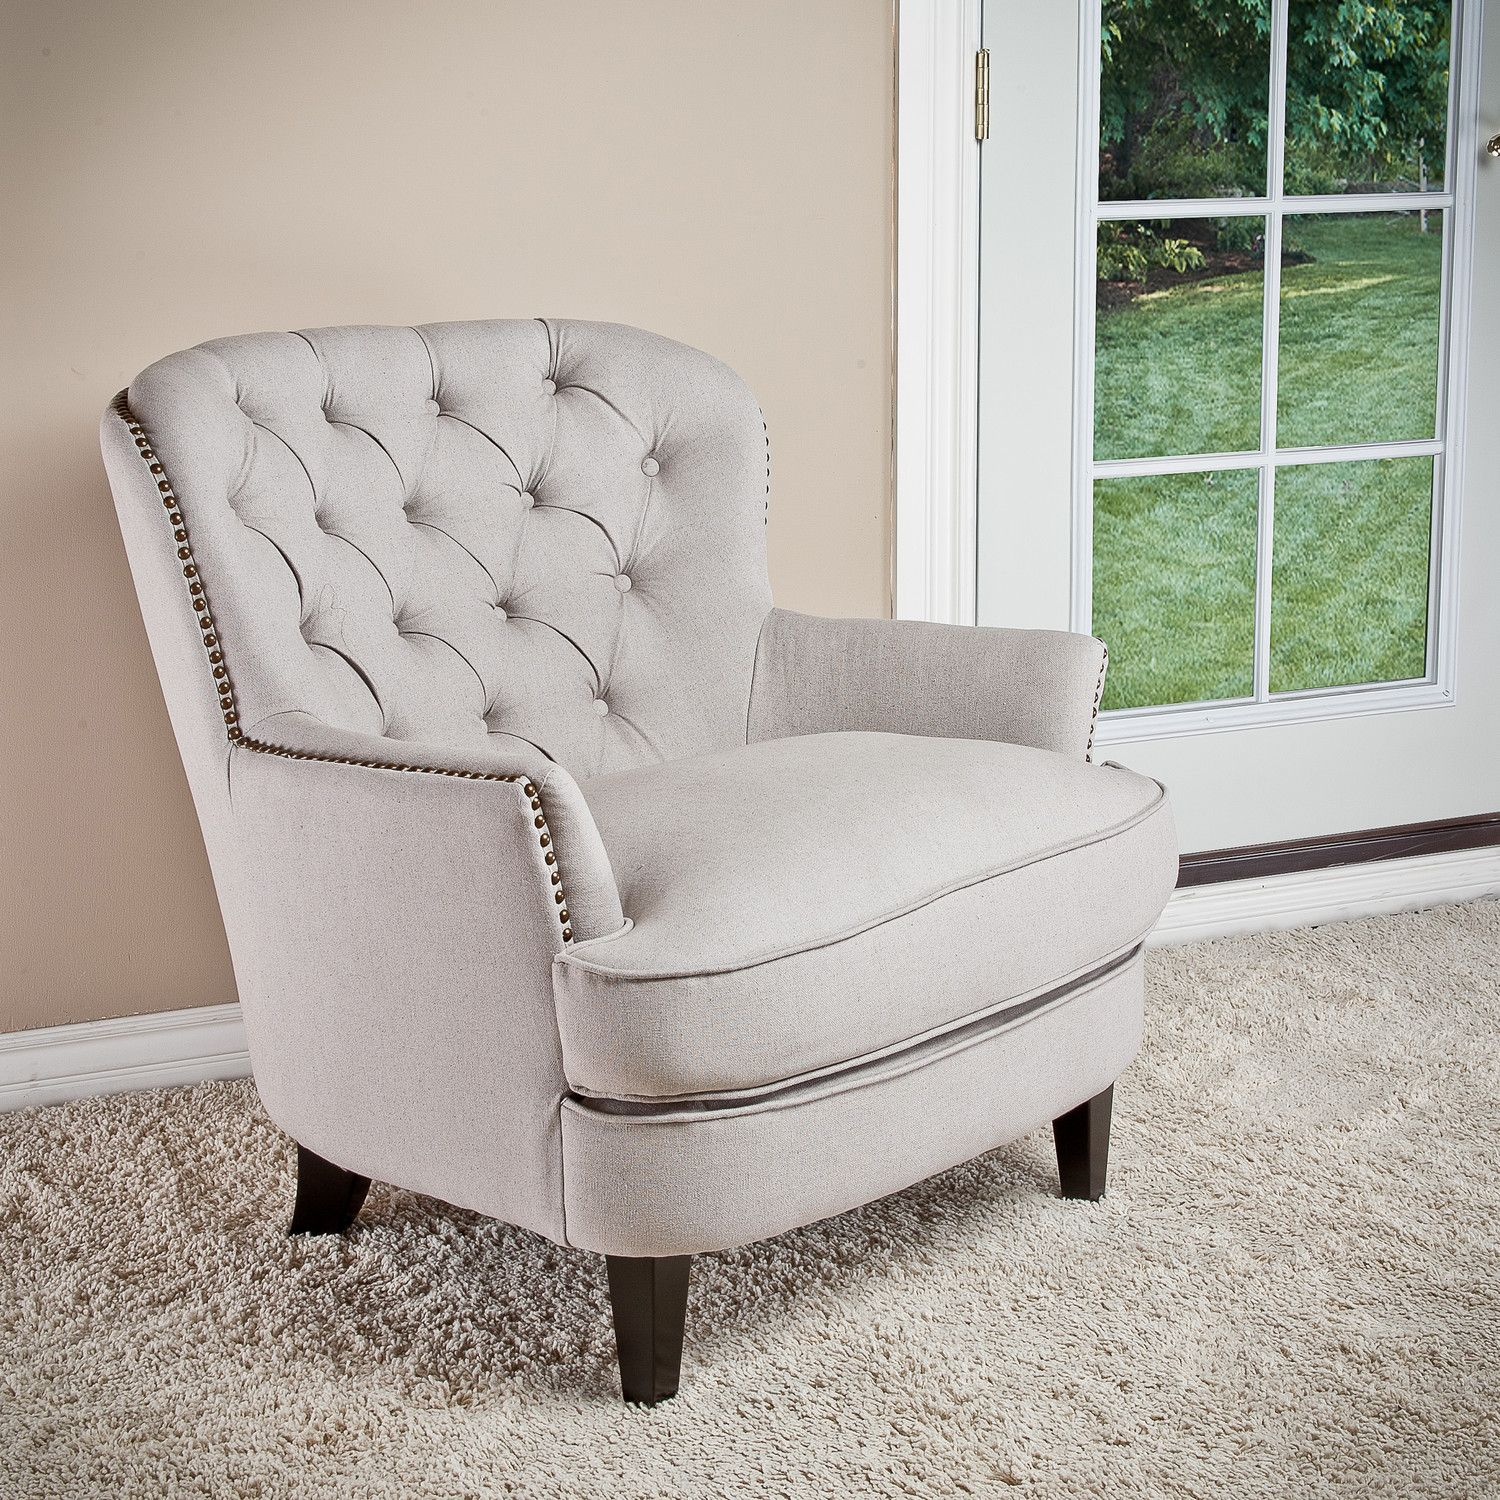 Home Loft Concept Jerome Tufted Upholstered Lounge Chair  Linen